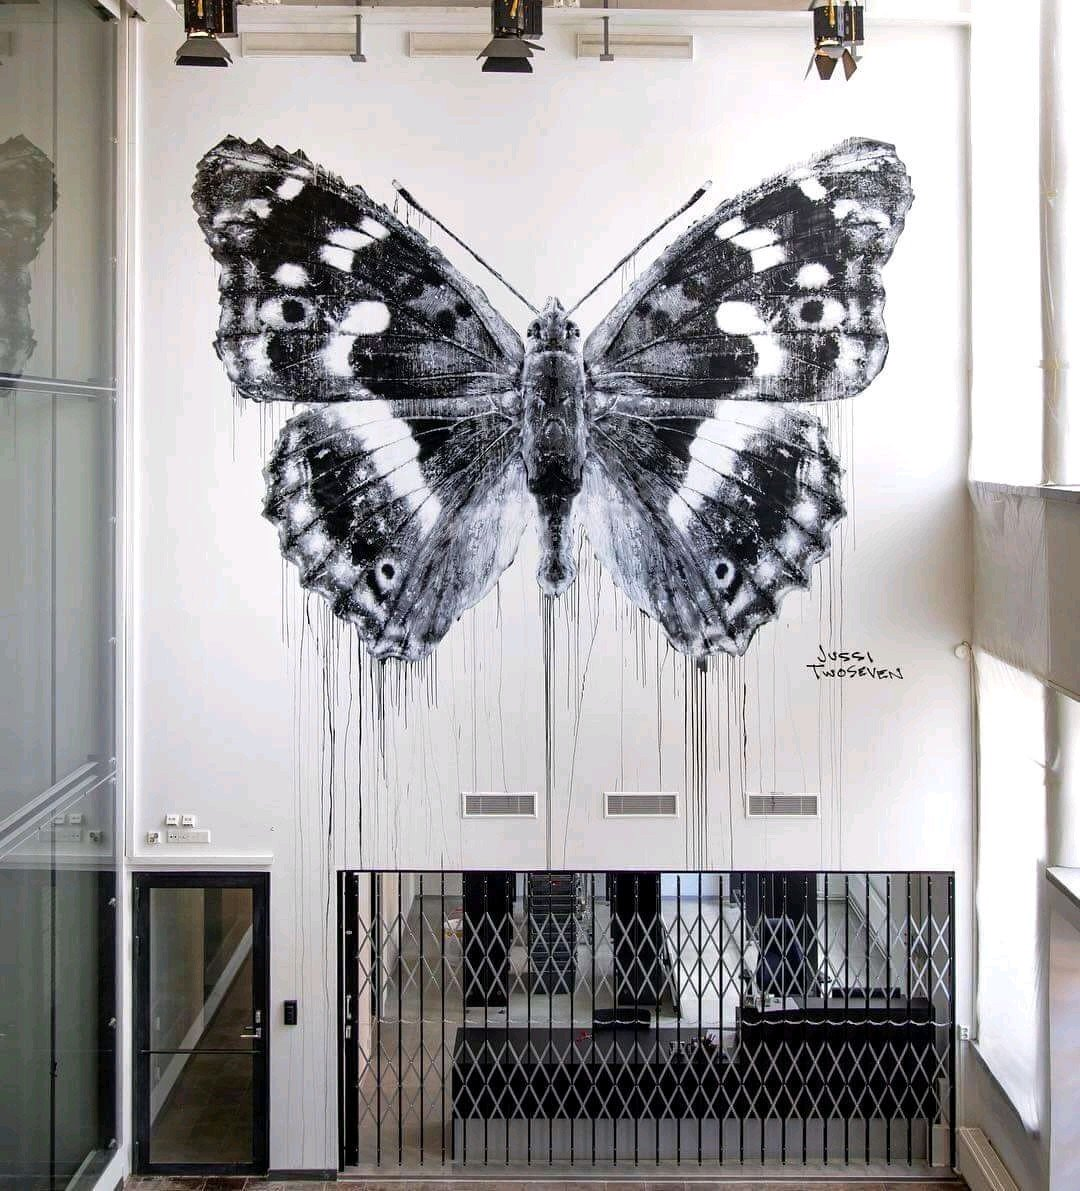 ... butterfly... in black and white. Art by Jussi TwoSeven #streetart #art #graffiti #mural #urbanart #Beauty #blackandwhite #butterfly<br>http://pic.twitter.com/aTppmuqY2r